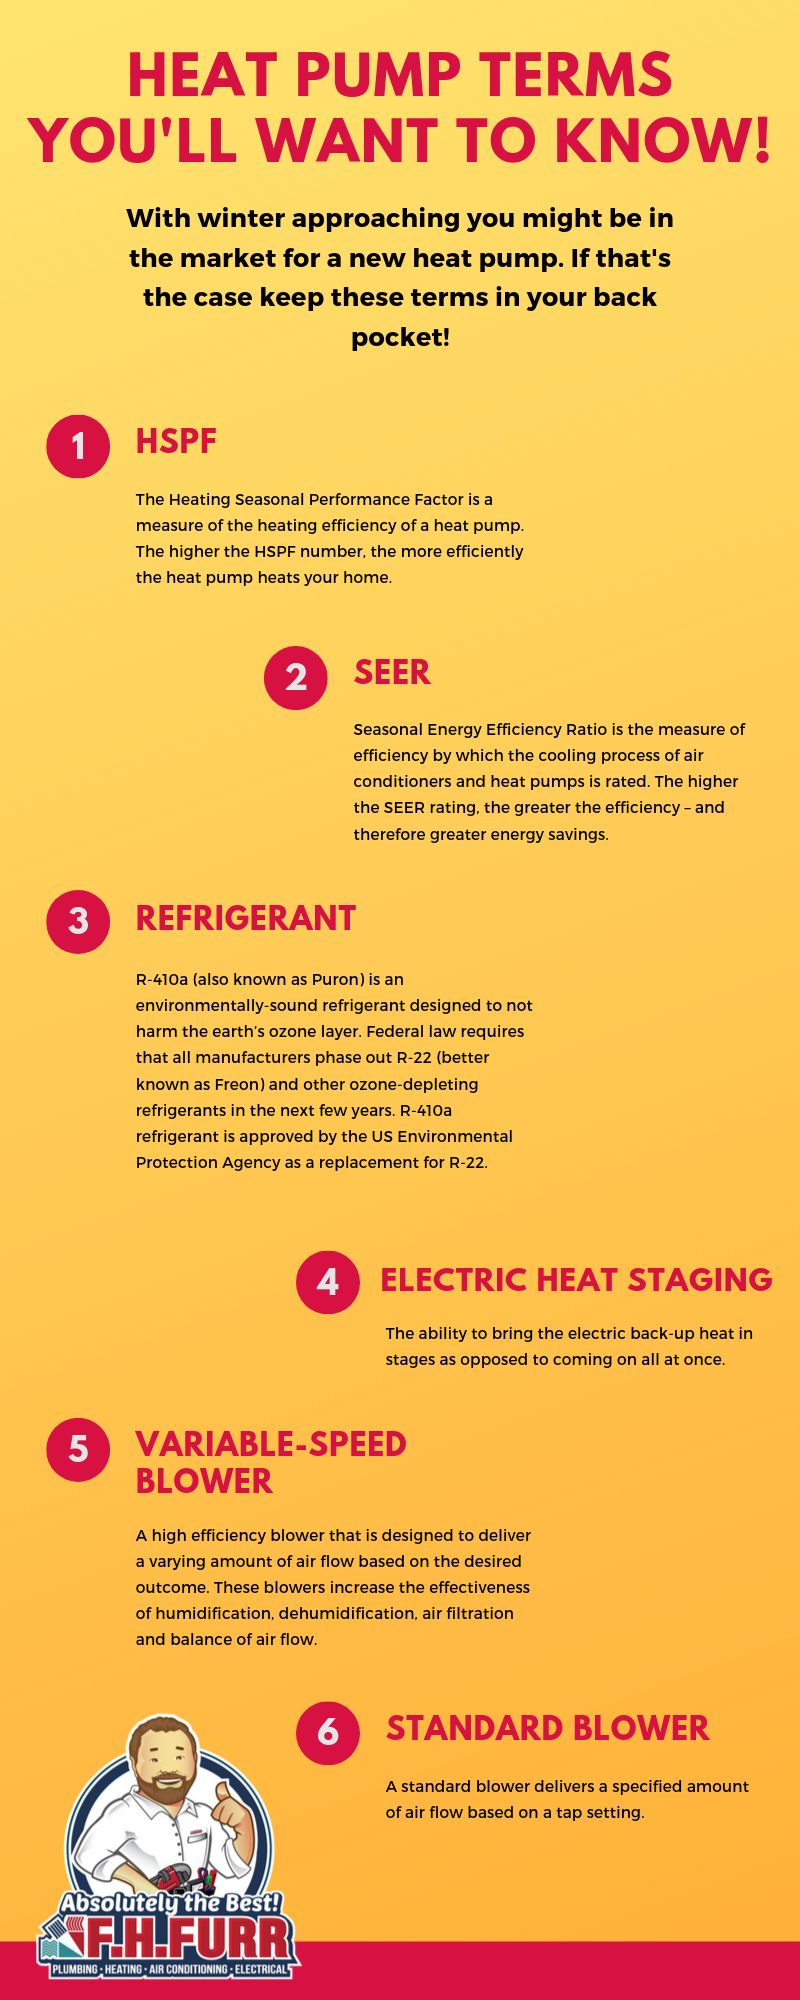 Heat pump terms youll want to know!